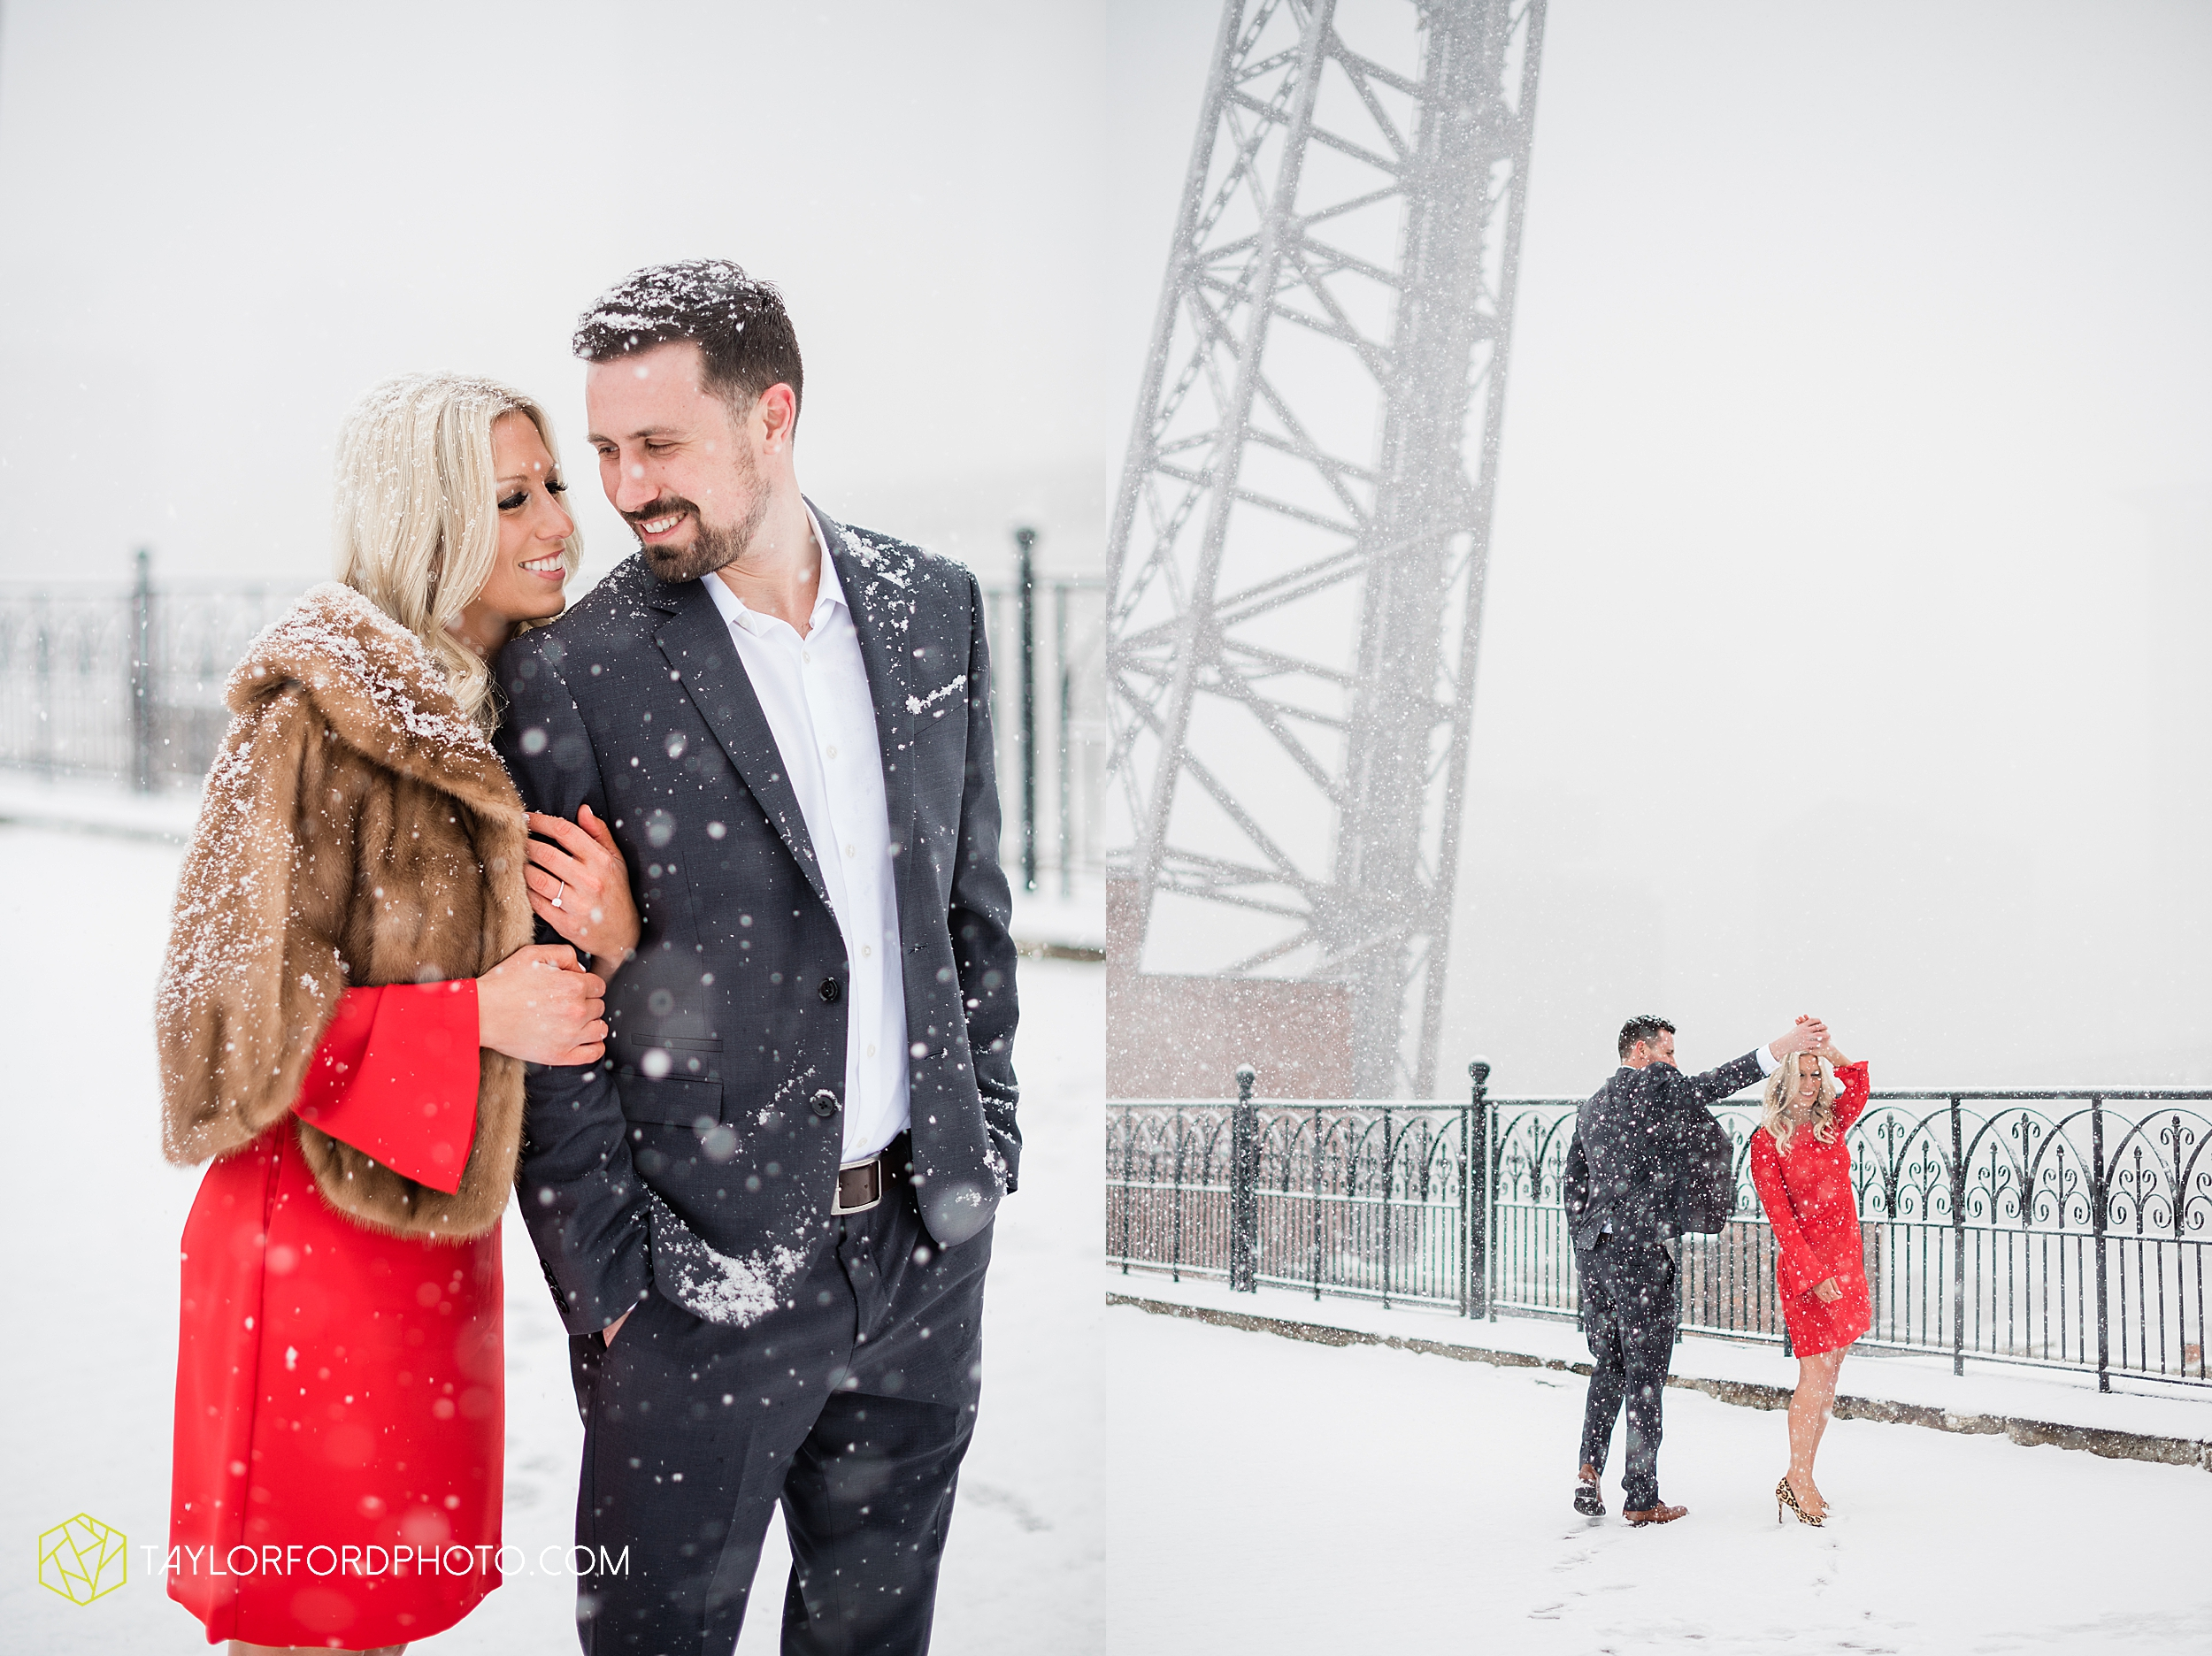 brittany-phil-downtown-cleveland-viaduct-the-flats-east-bank-rocky-river-reservation-engagement-photography-taylor-ford-hirschy-photographer_2417.jpg